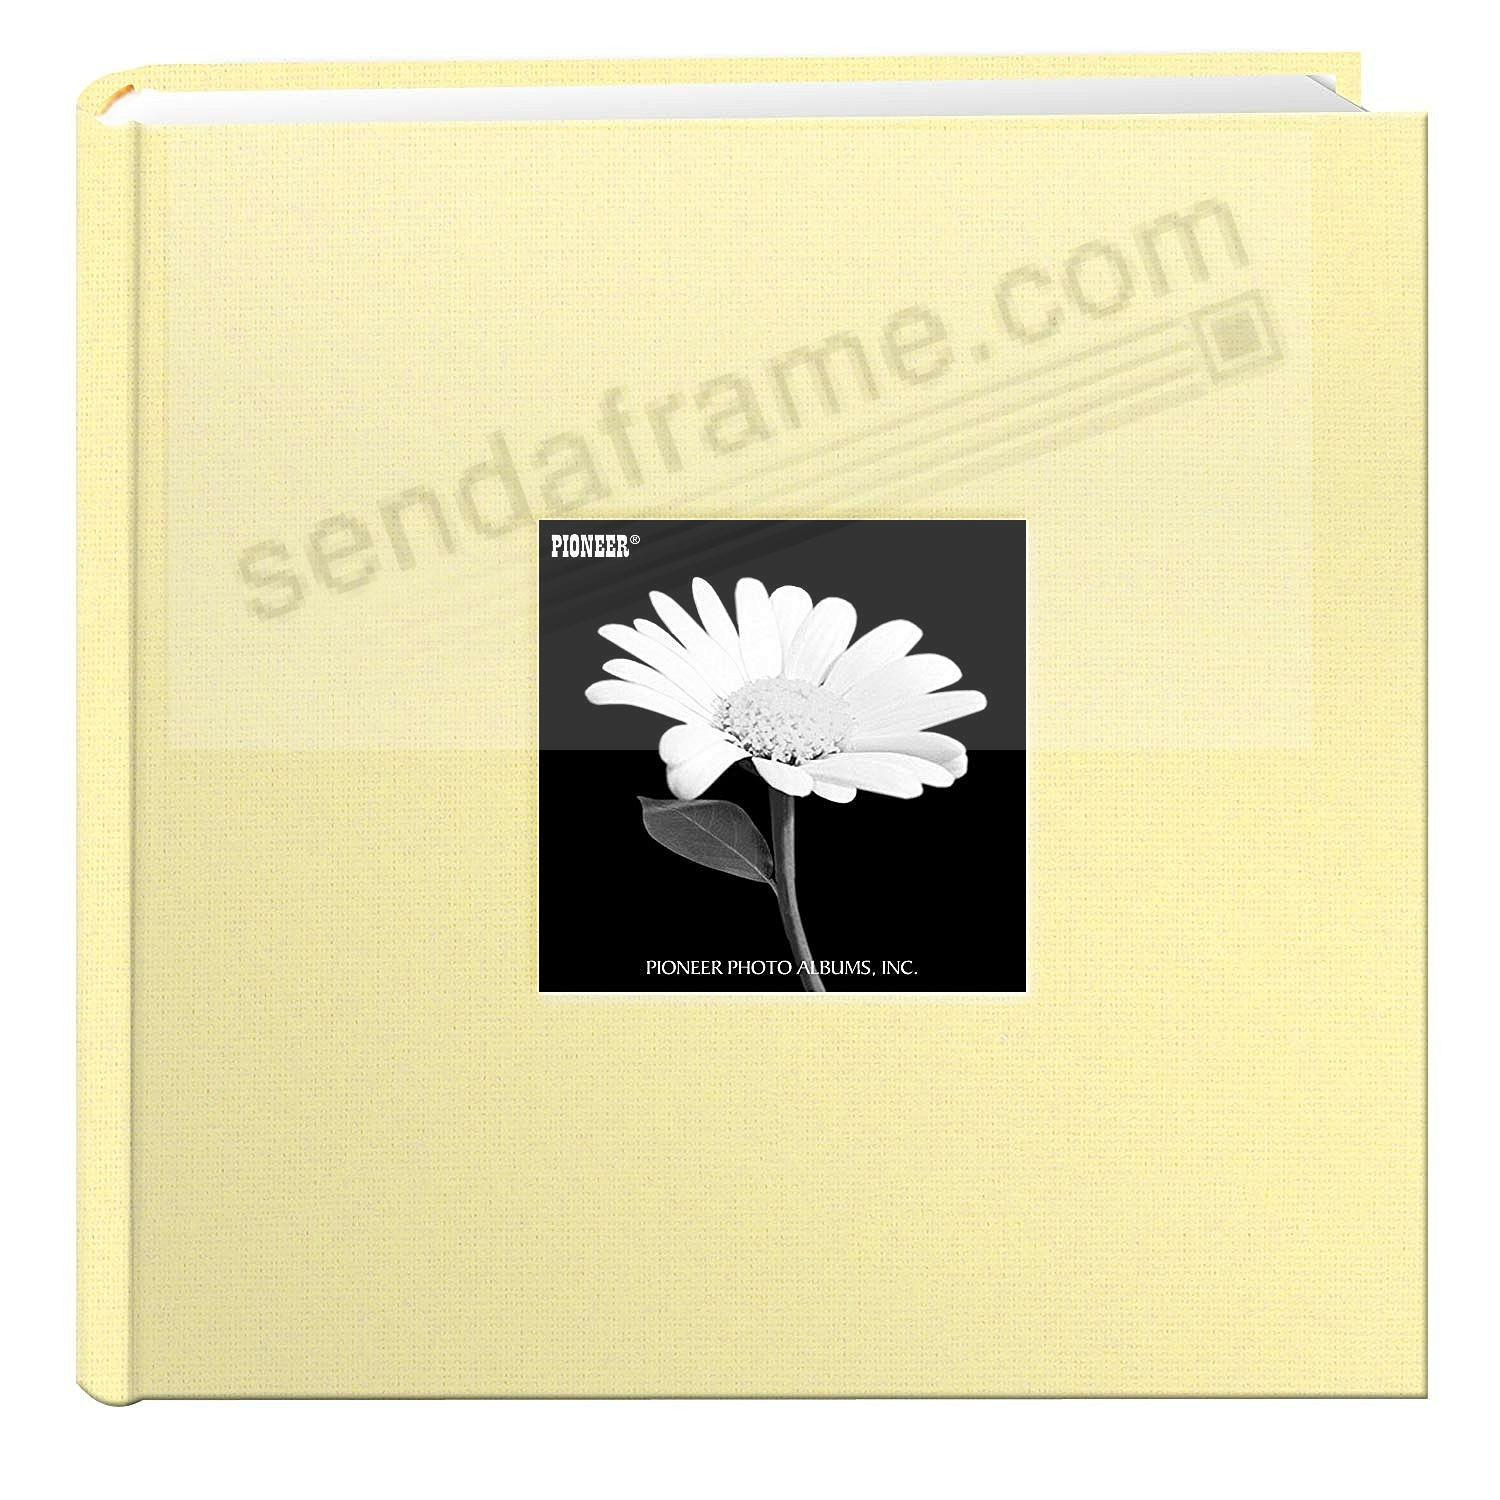 SOFT YELLOW Cloth 2-up frame cover photo album by Pioneer®